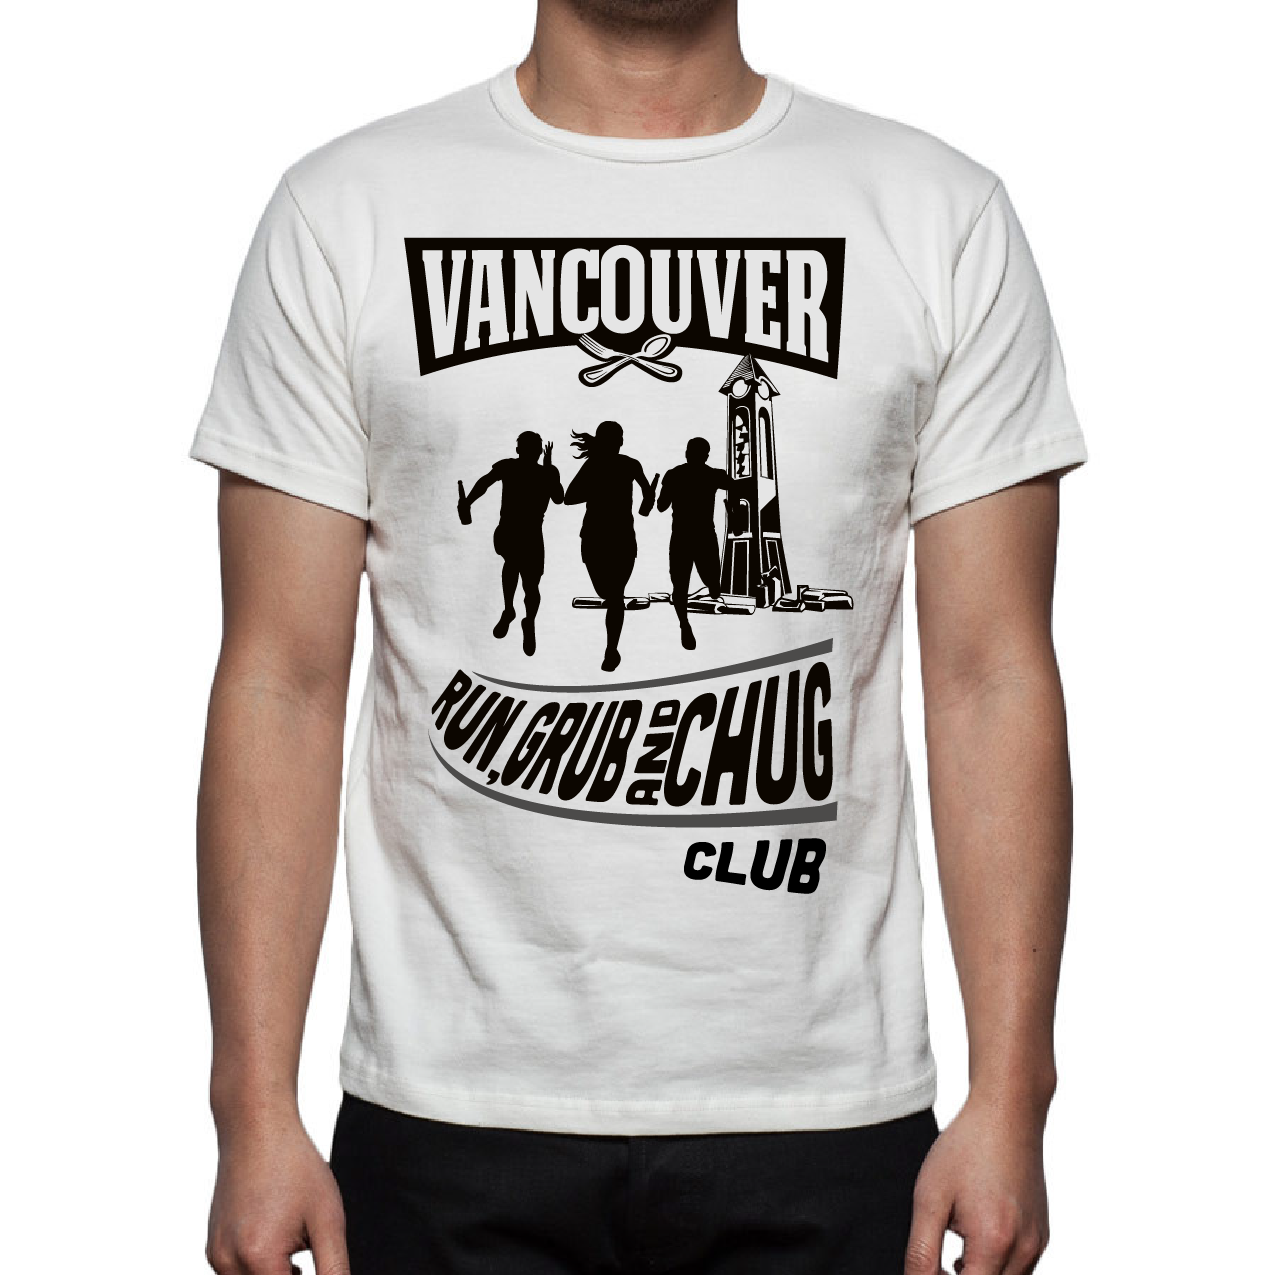 Playful Personable Club T Shirt Design For A Company By Chris025